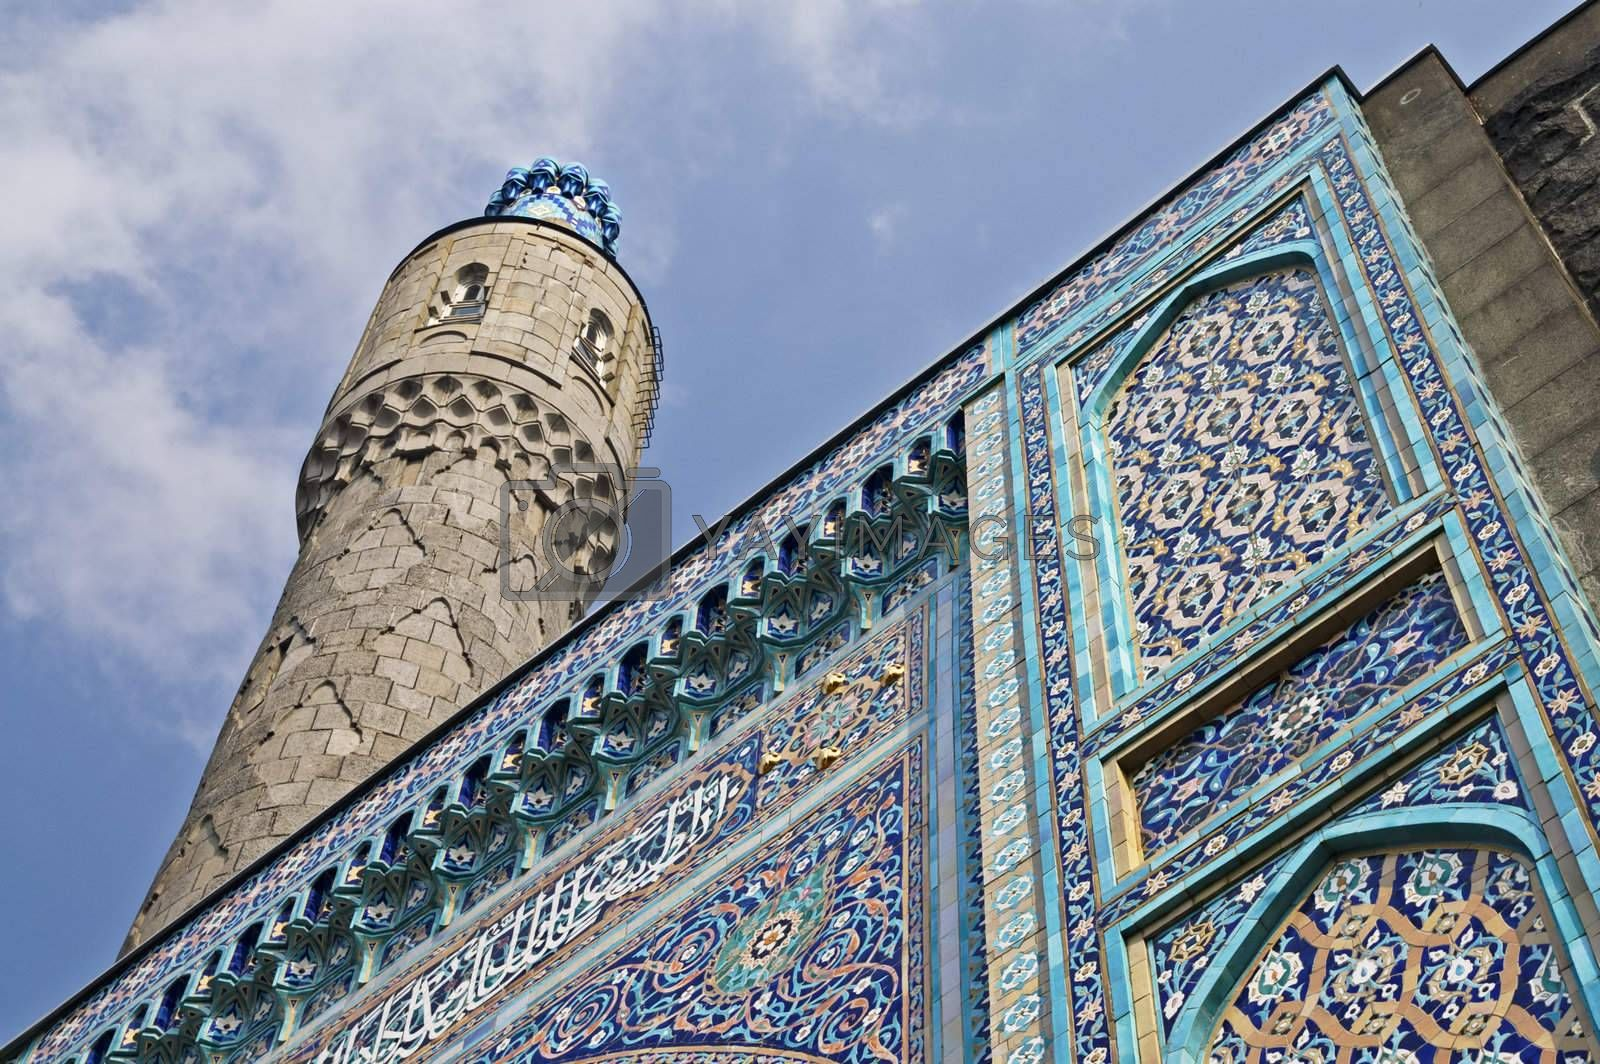 The minaret and the front wall with Arabic mosaics of the ancient mosque in Saint Petersburg, Russia.